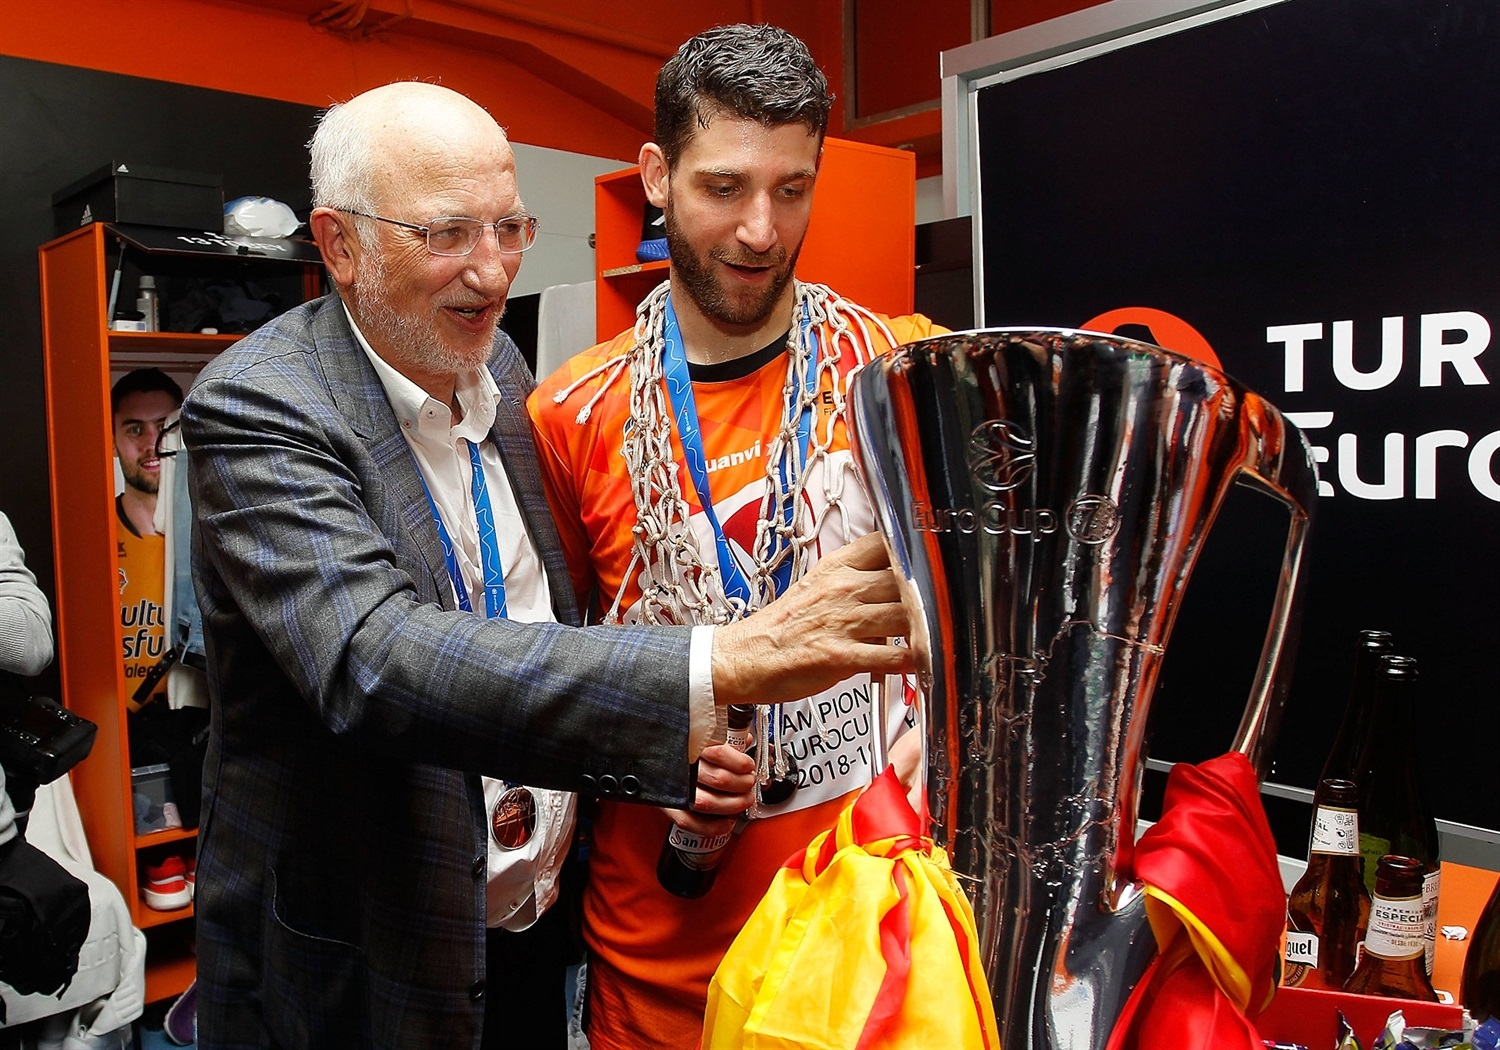 Joan Roig and Antoine Diot - Valencia Basket champ - EuroCup Finals Game 3 - EC18